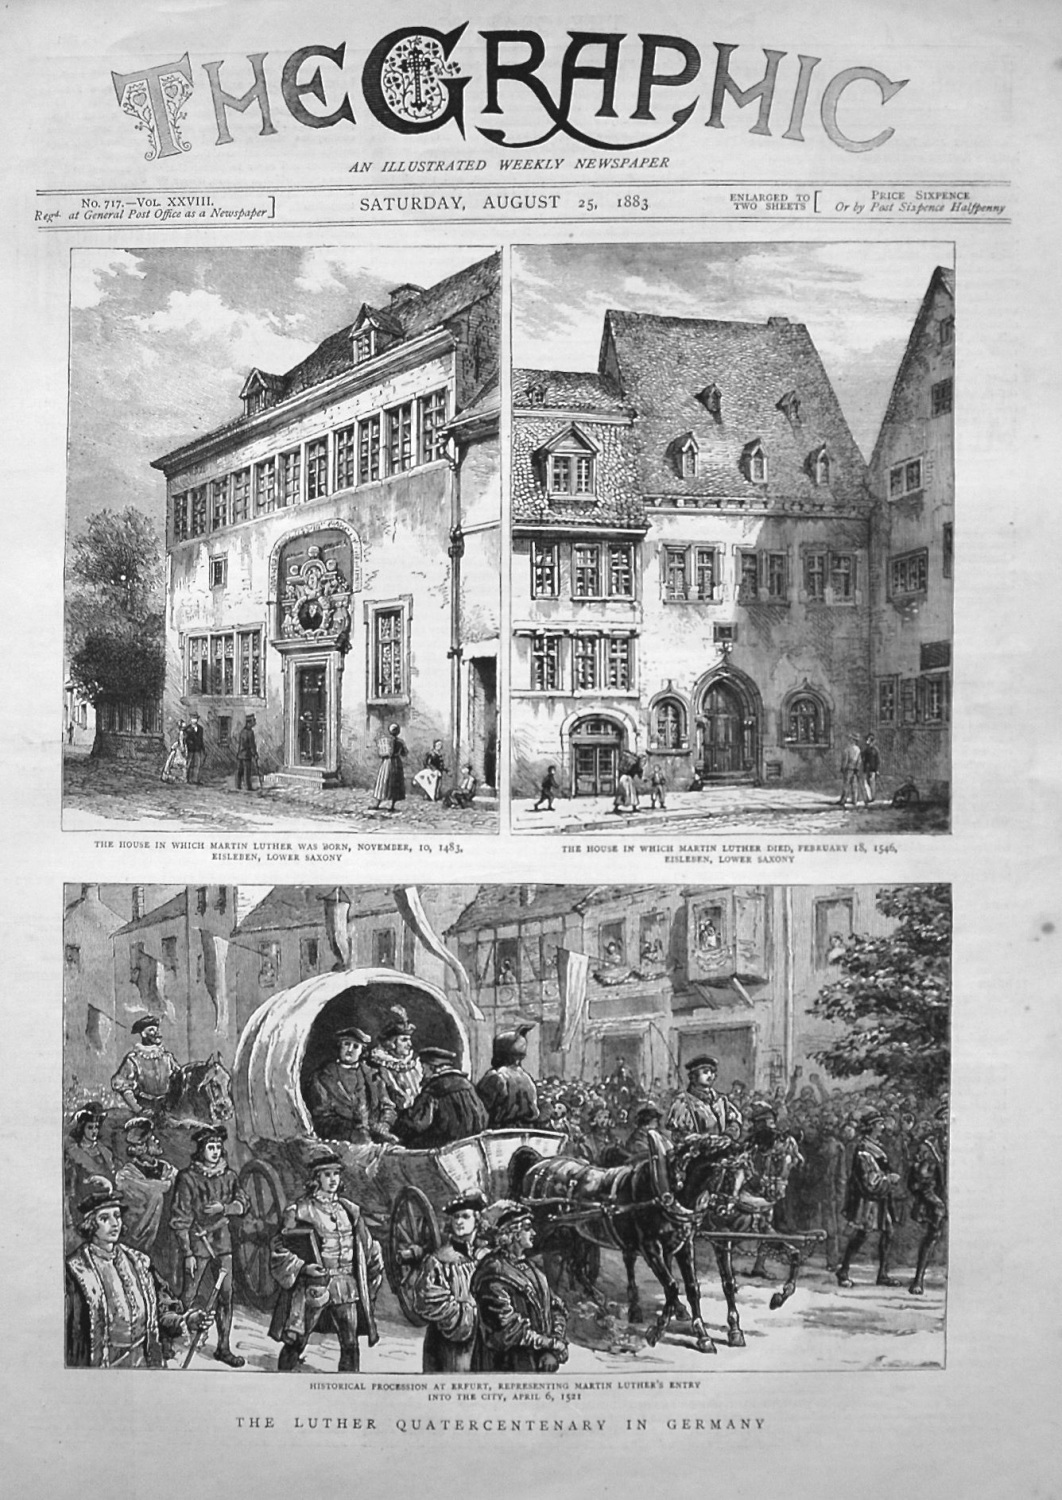 Luther Quatercentenary in Germany. 1883.